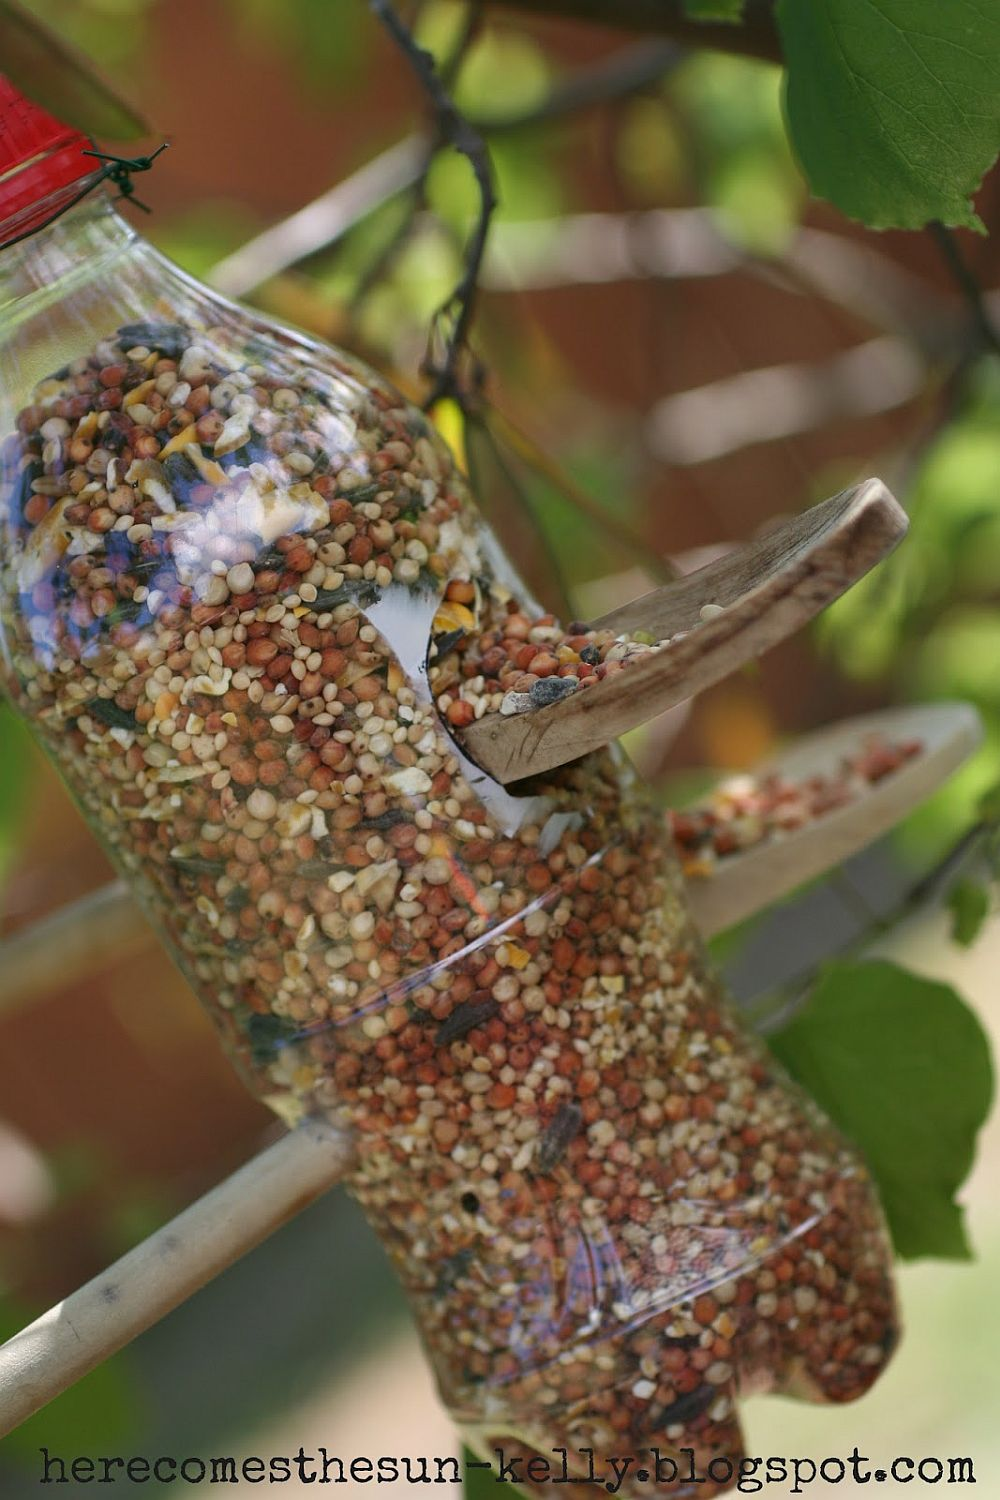 1559675287 32 40 diy bird feeder ideas for a live garden - 40 DIY Bird Feeder Ideas for a Live Garden